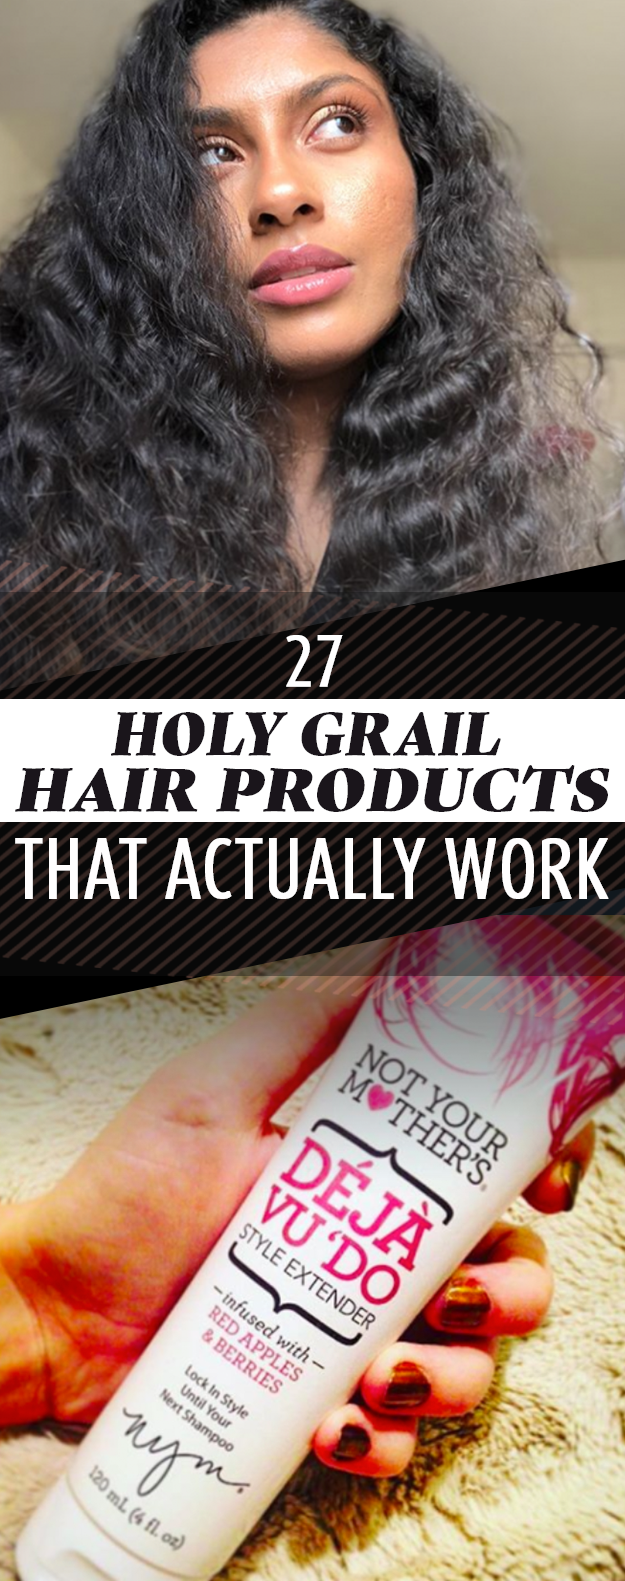 27 Holy Grail Hair Products That Actually Work